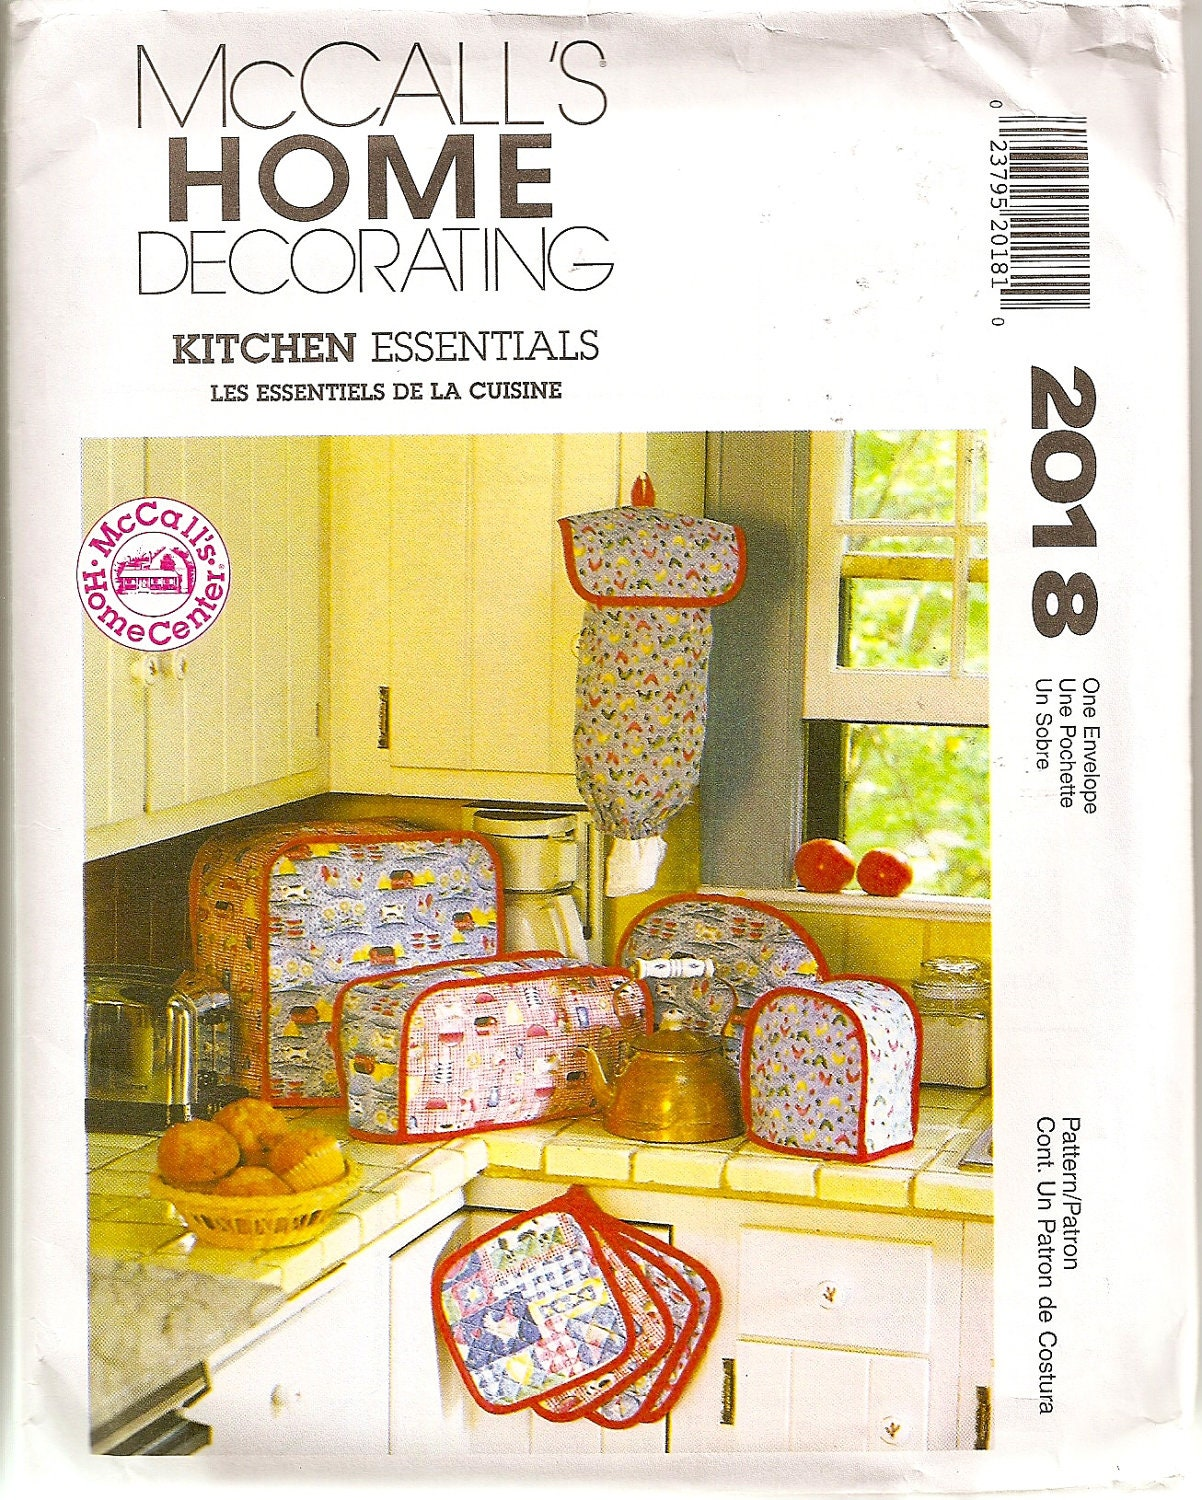 Kitchen decor sewing pattern cafe curtains appliance covers chair